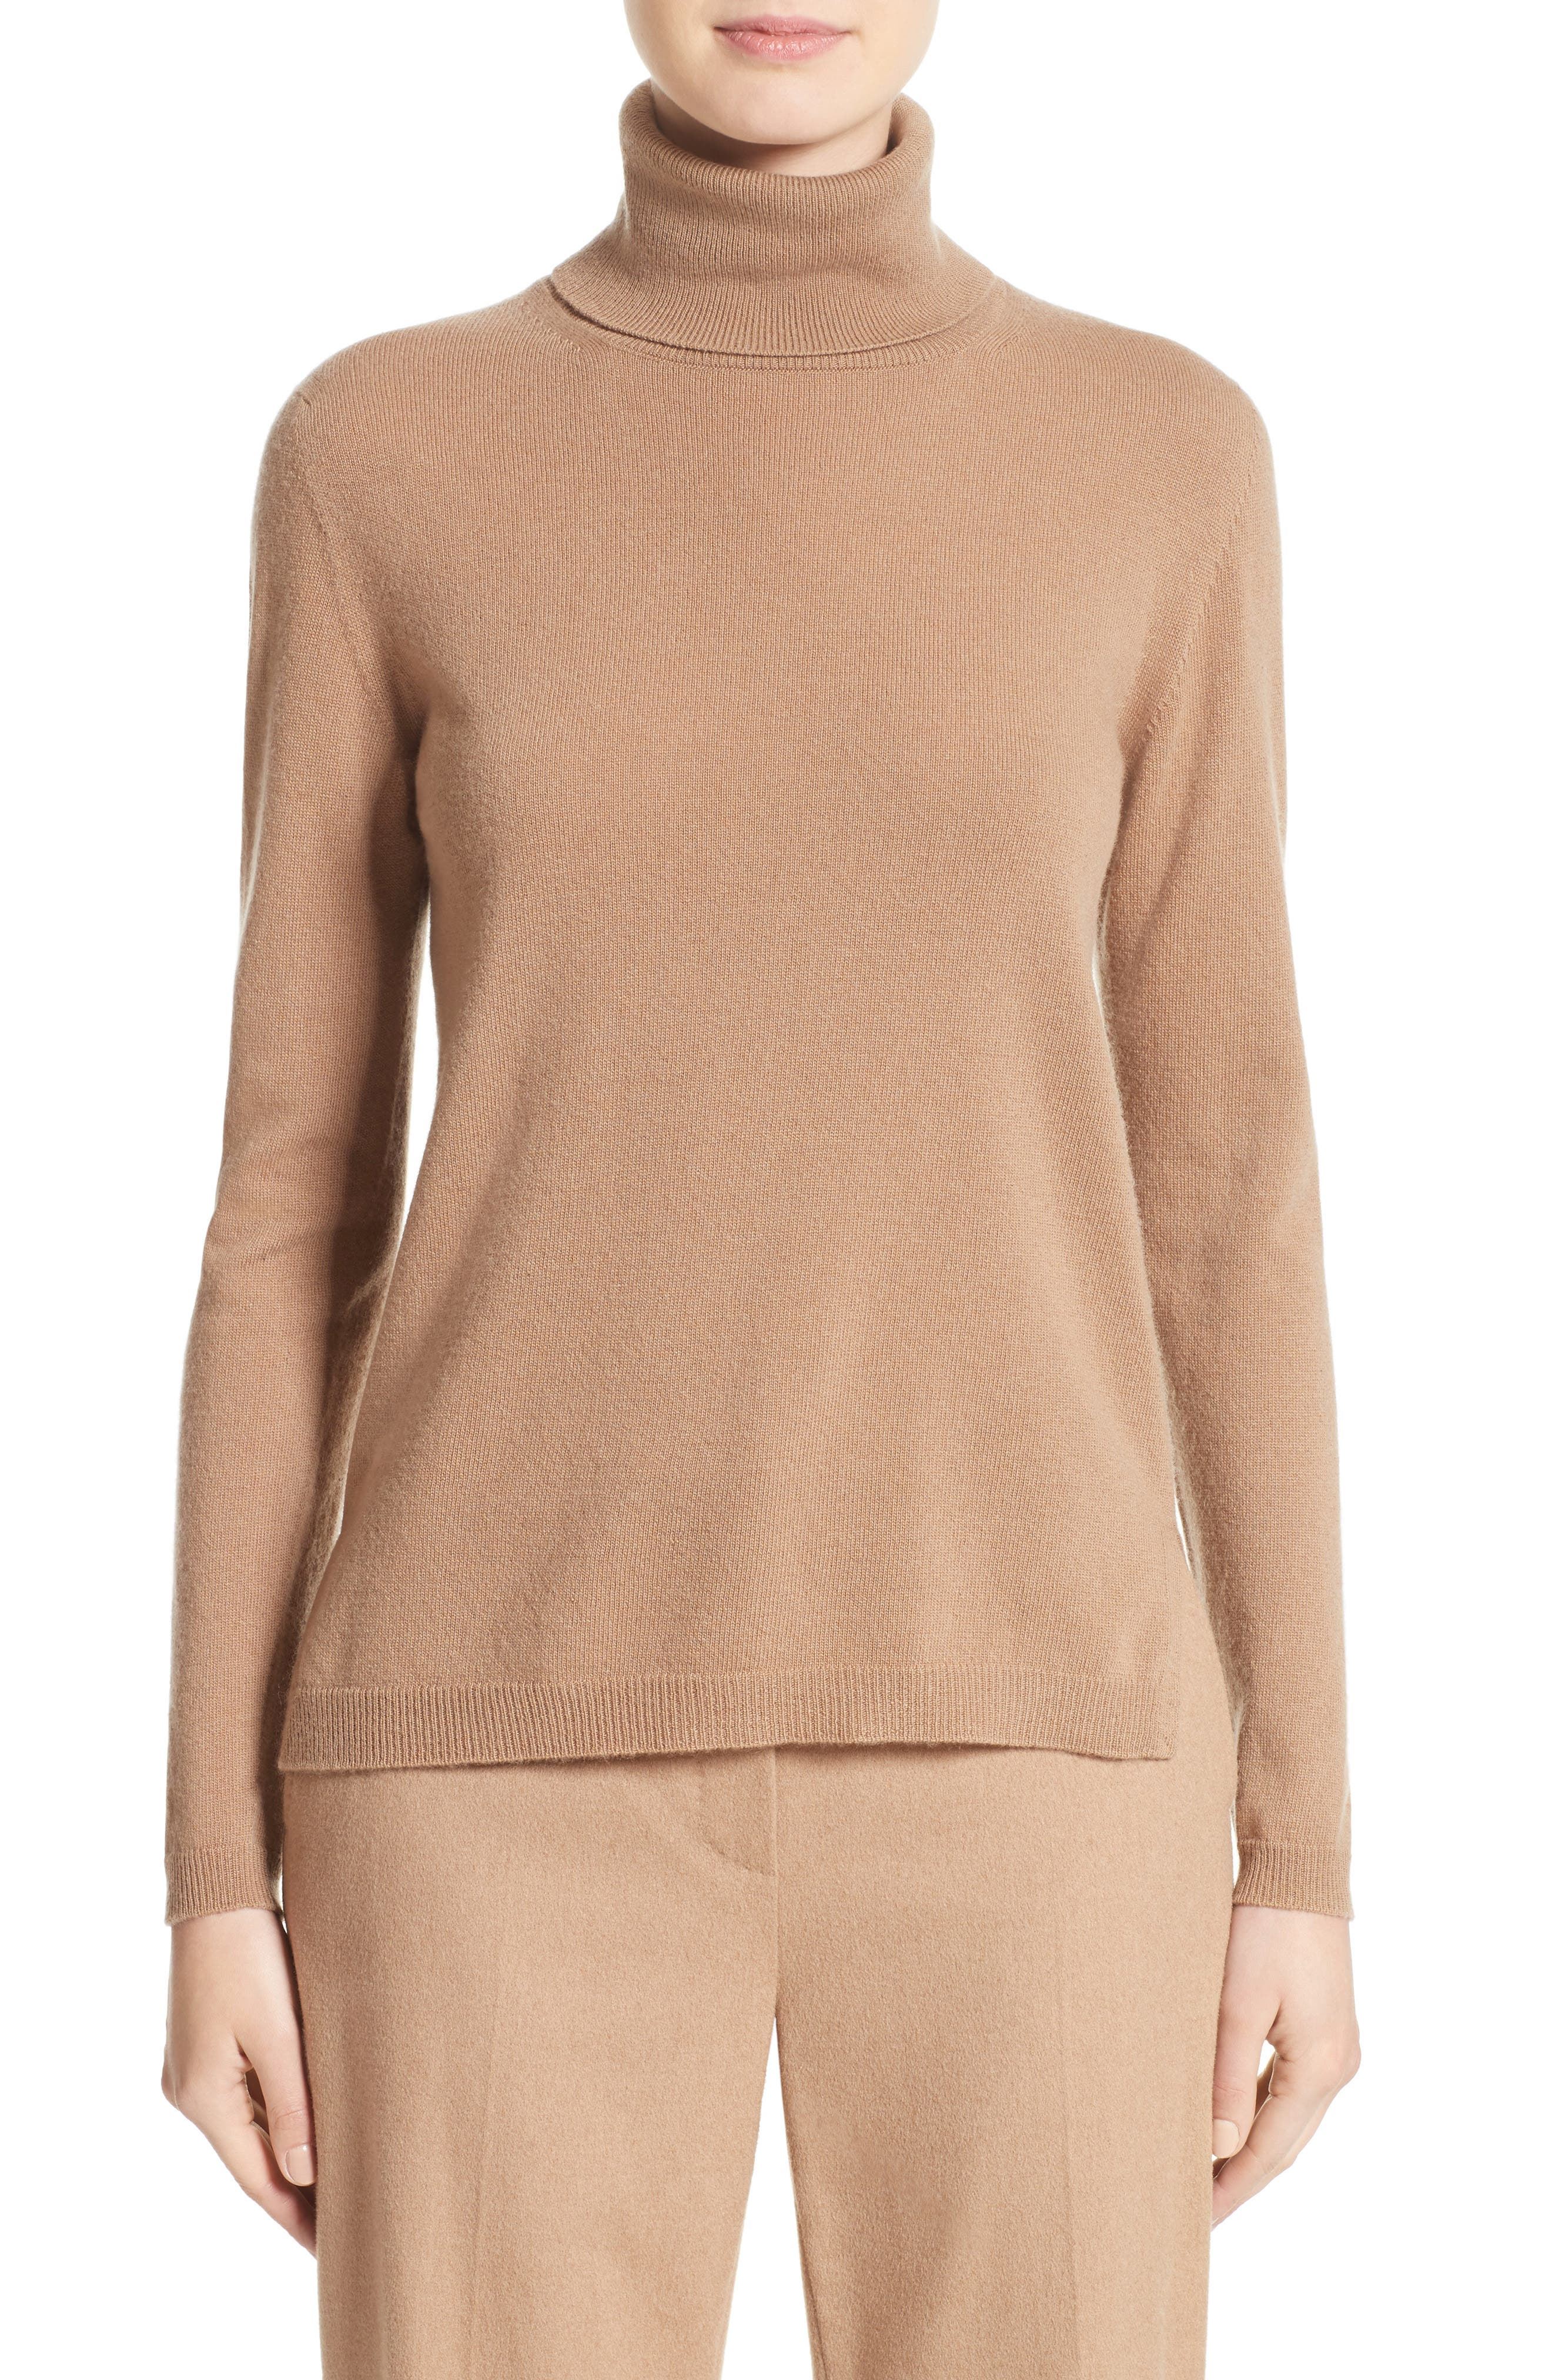 Max Mara Nigeria Wool & Cashmere Turtleneck Sweater